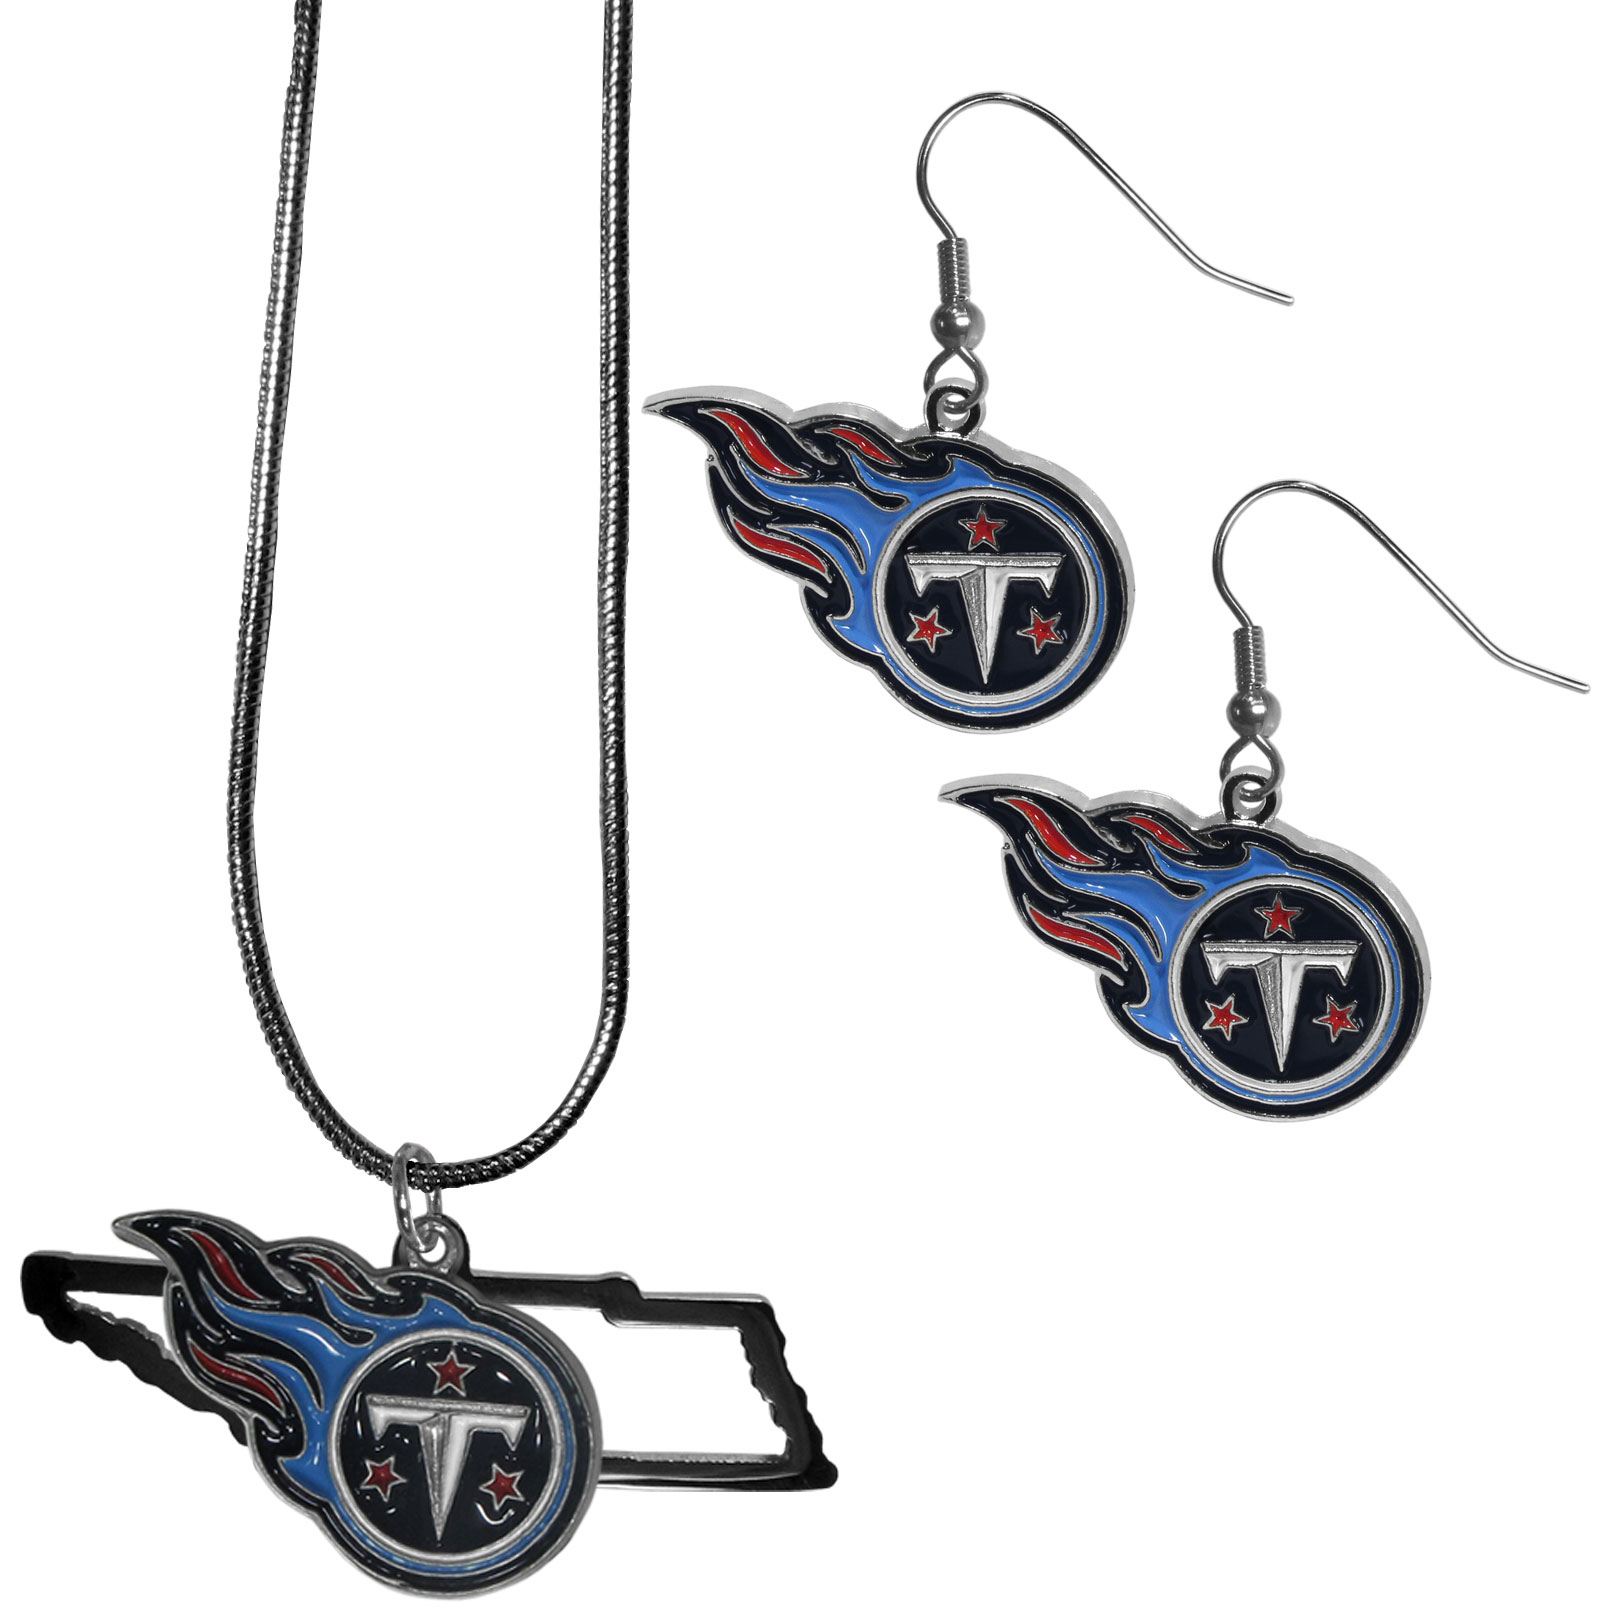 Tennessee Titans Dangle Earrings and State Necklace Set - Get in on the trend! State themes are a trend that just keeps getting more popular and this jewelry set takes the state style and give it a sporty twist with a Tennessee Titans necklace that features an Arizona state outline charm paired with a beautiful team charm and matching team charm dangle earrings. The earrings feature hypoallergenic fishhook posts that are nickel free.